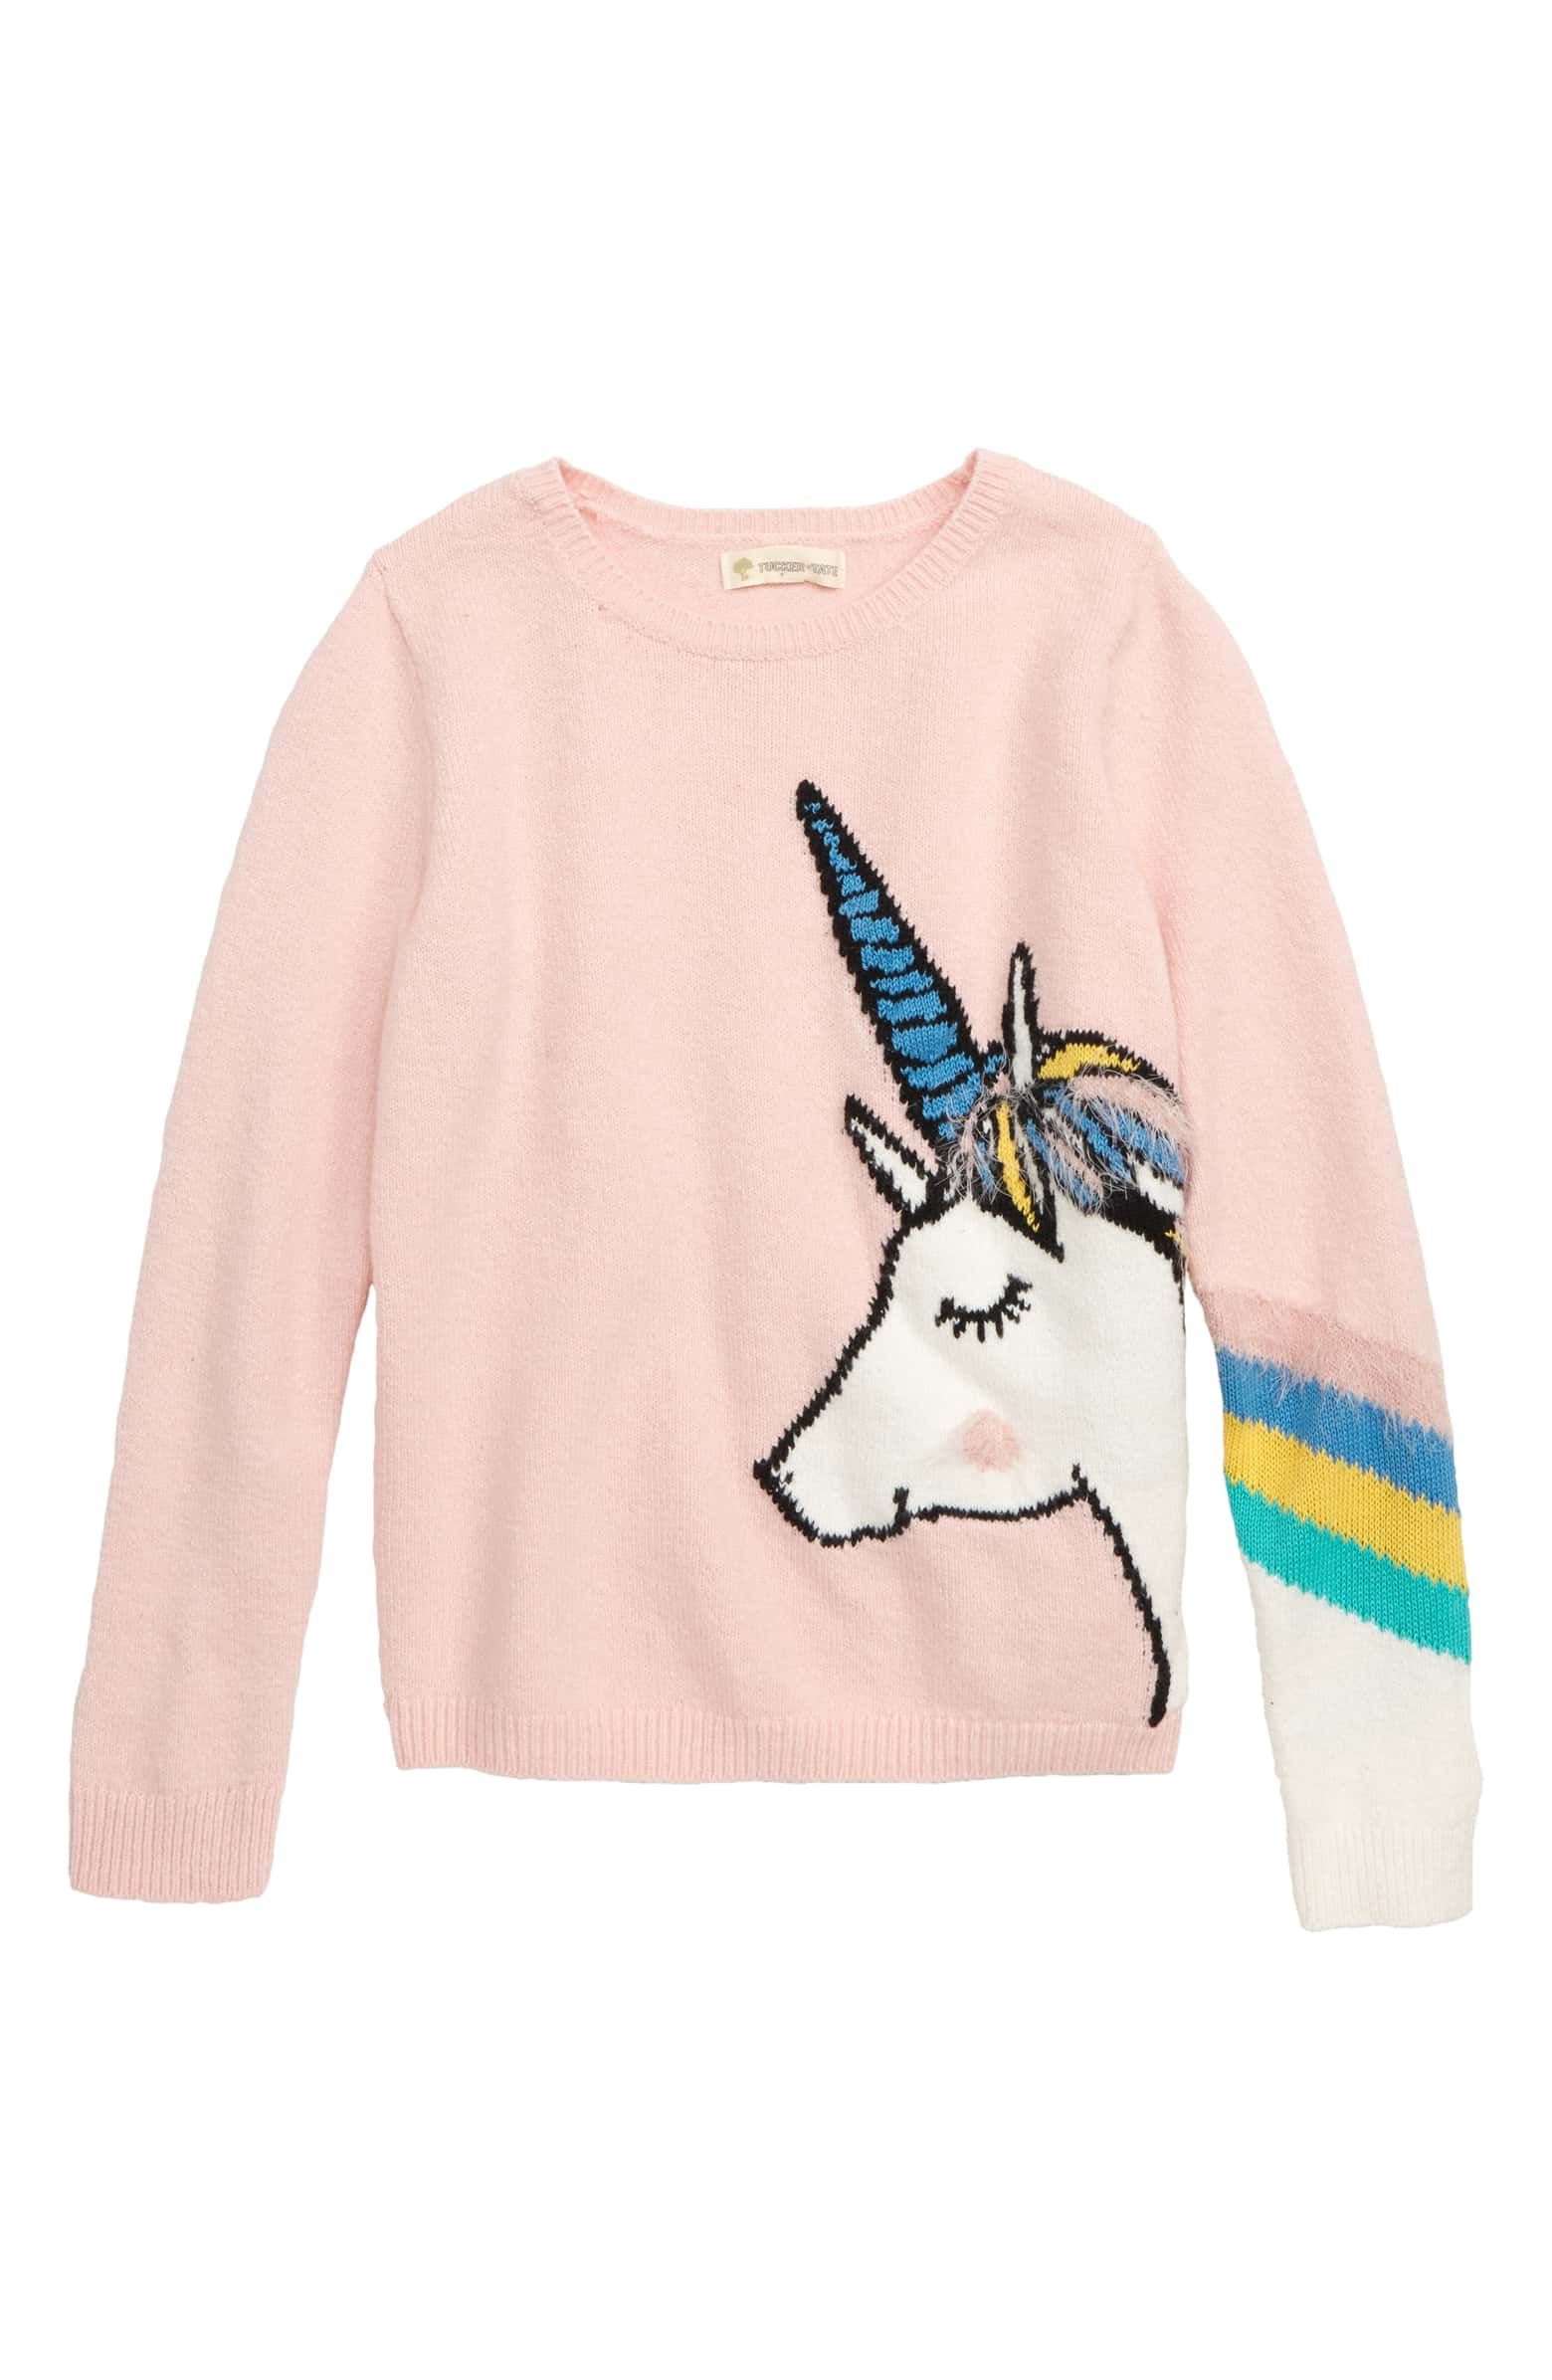 e4d6f684fa51 Unicorn Icon Sweater, Main, color, PINK PEACHSKIN BOLD UNICORN Tucker Tate,  Little